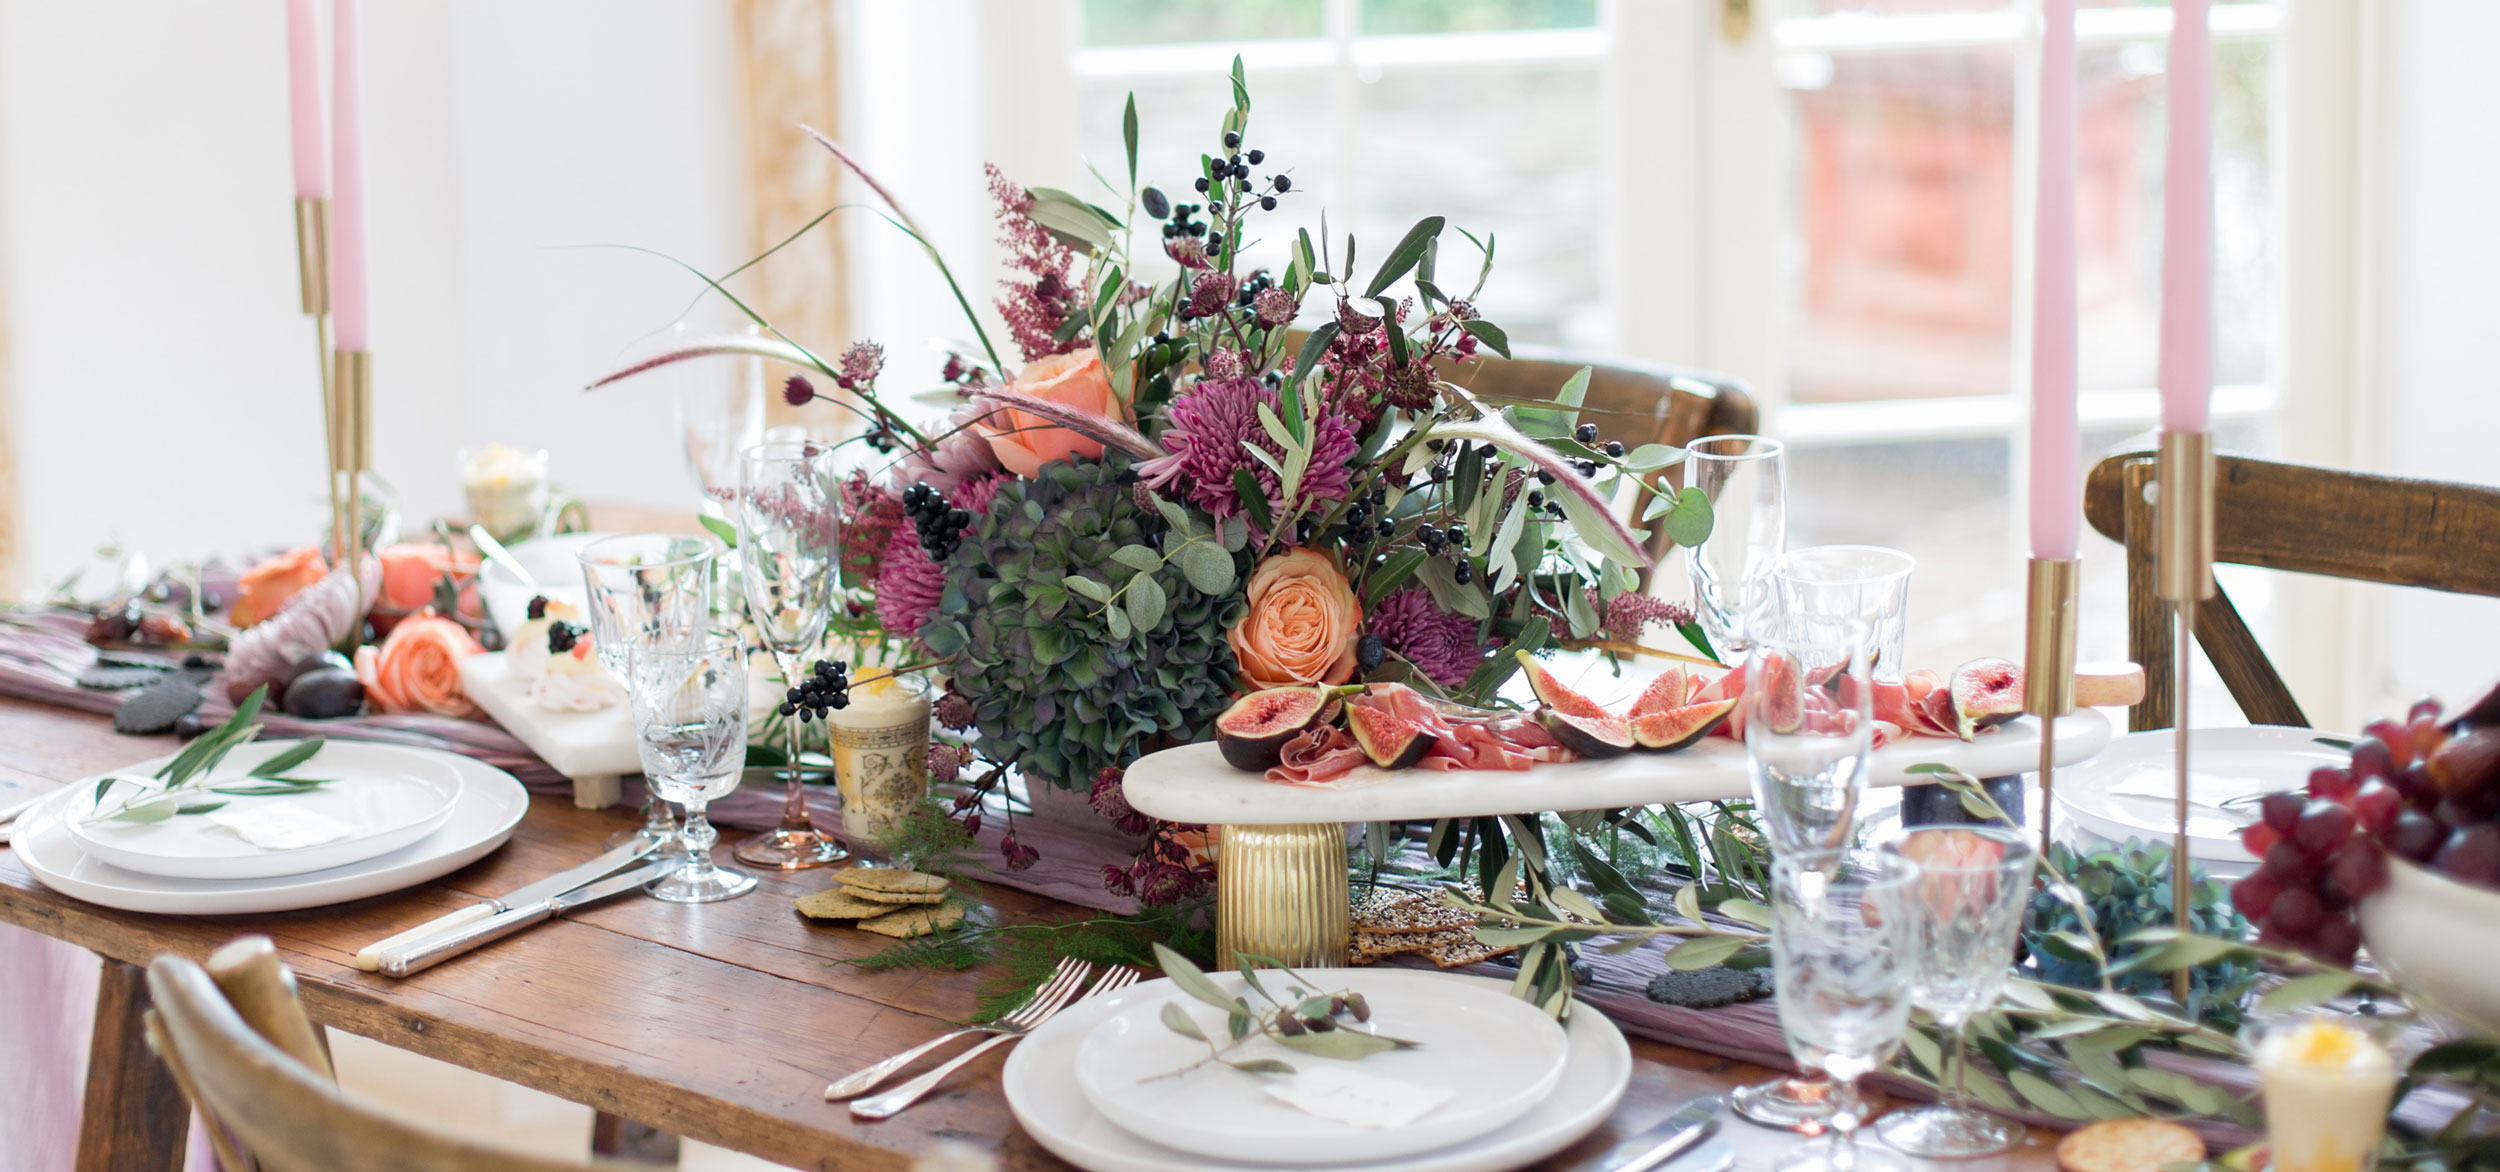 Event Catering & Grazing Tables | The Curated Kitchen, Surrey